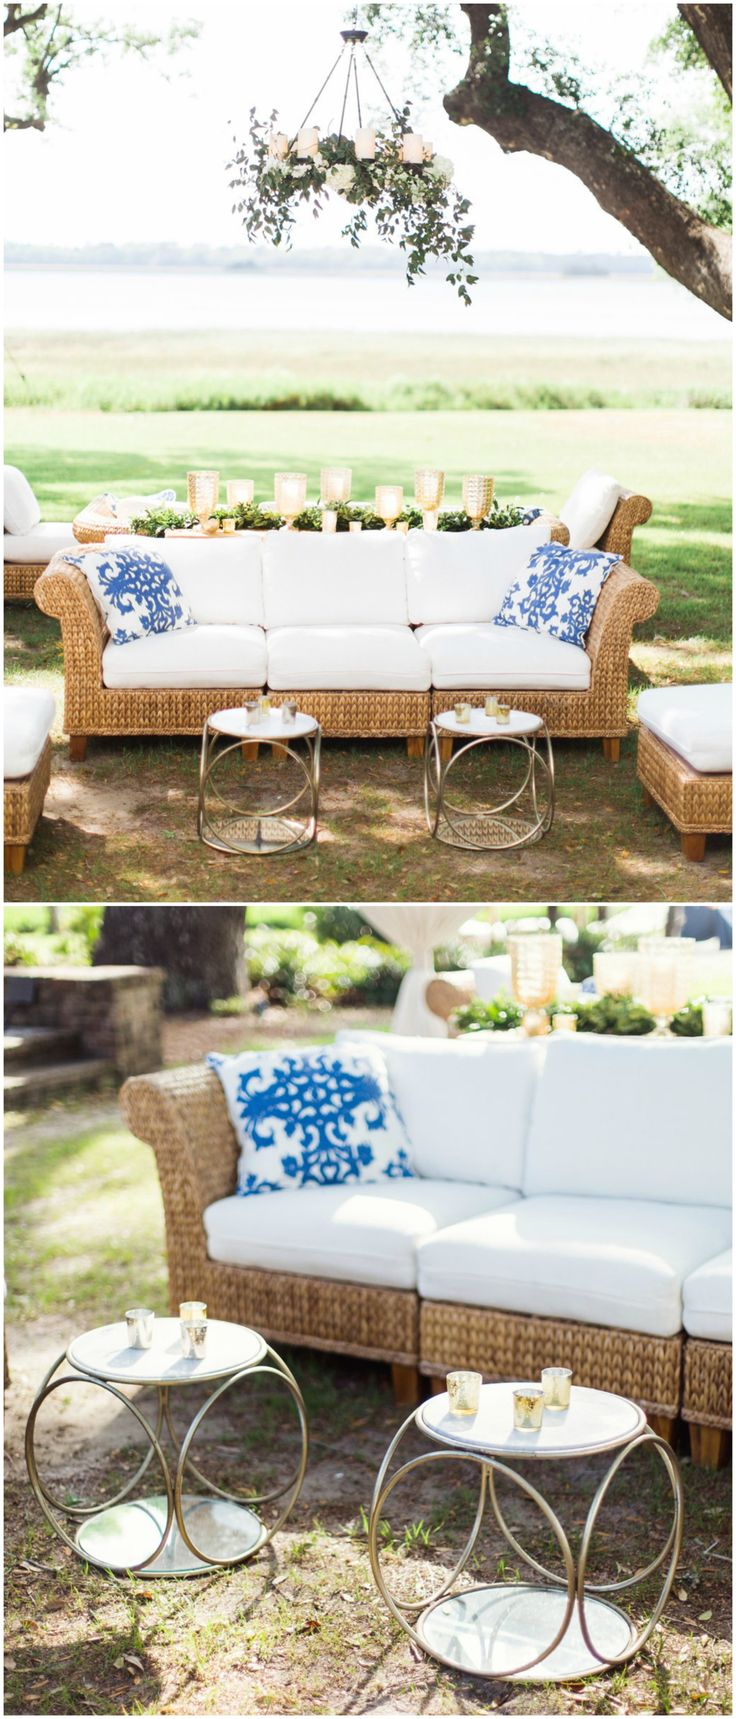 Outdoor Wedding Reception Furniture, Charleston Wedding, Wicker Couches,  White Cushions, Bright Blue